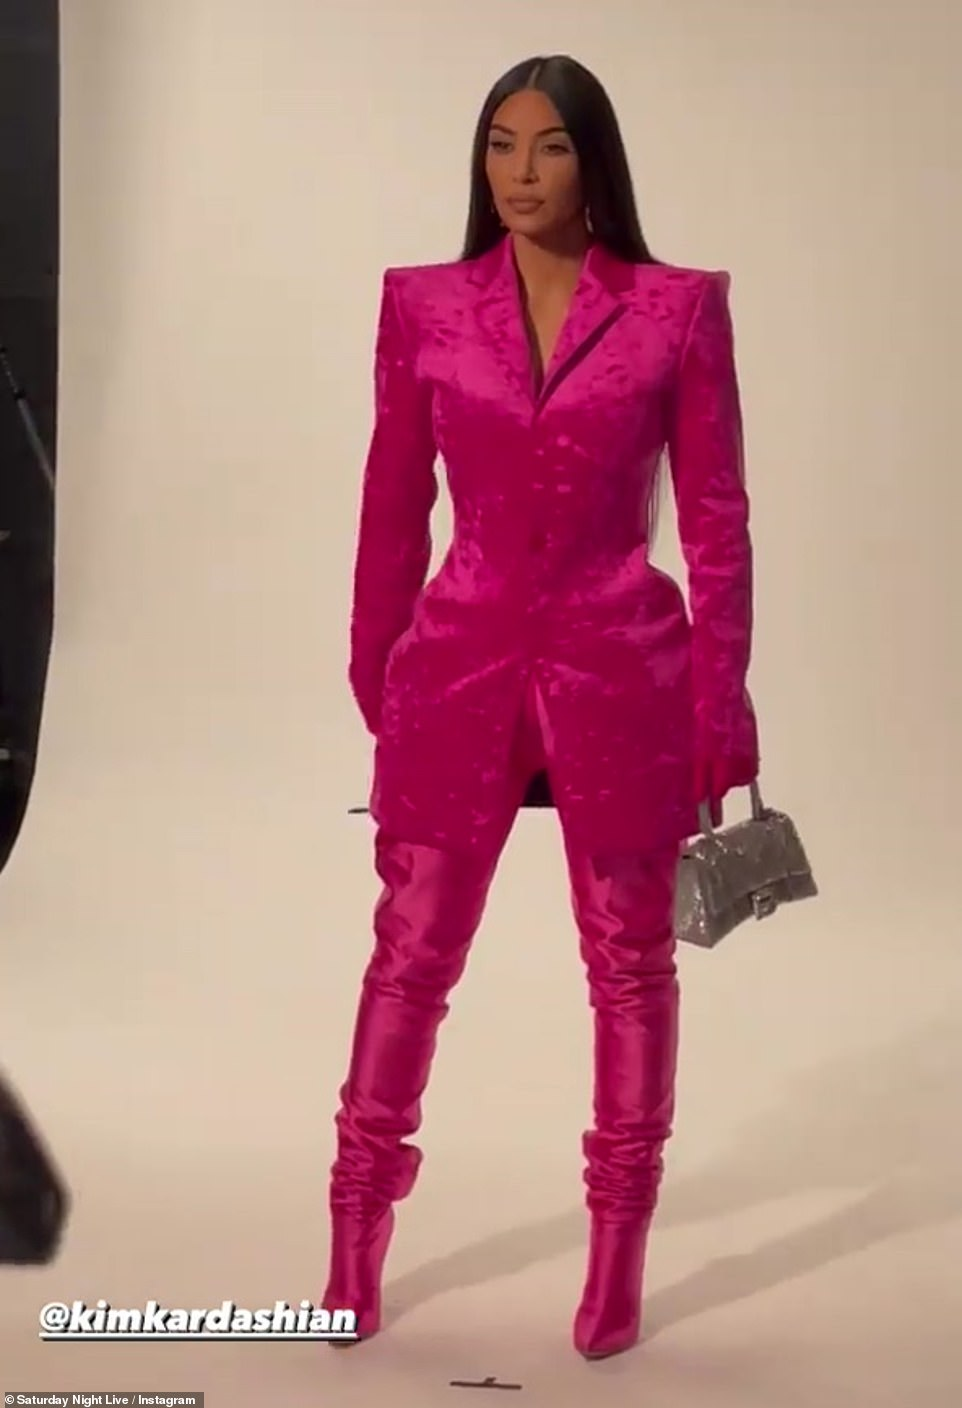 Pretty in pink: The long-running sketch comedy show announced a social takeover earlier this week, and Kim commenced to share a short video of herself in a hot pink crushed velvet suit